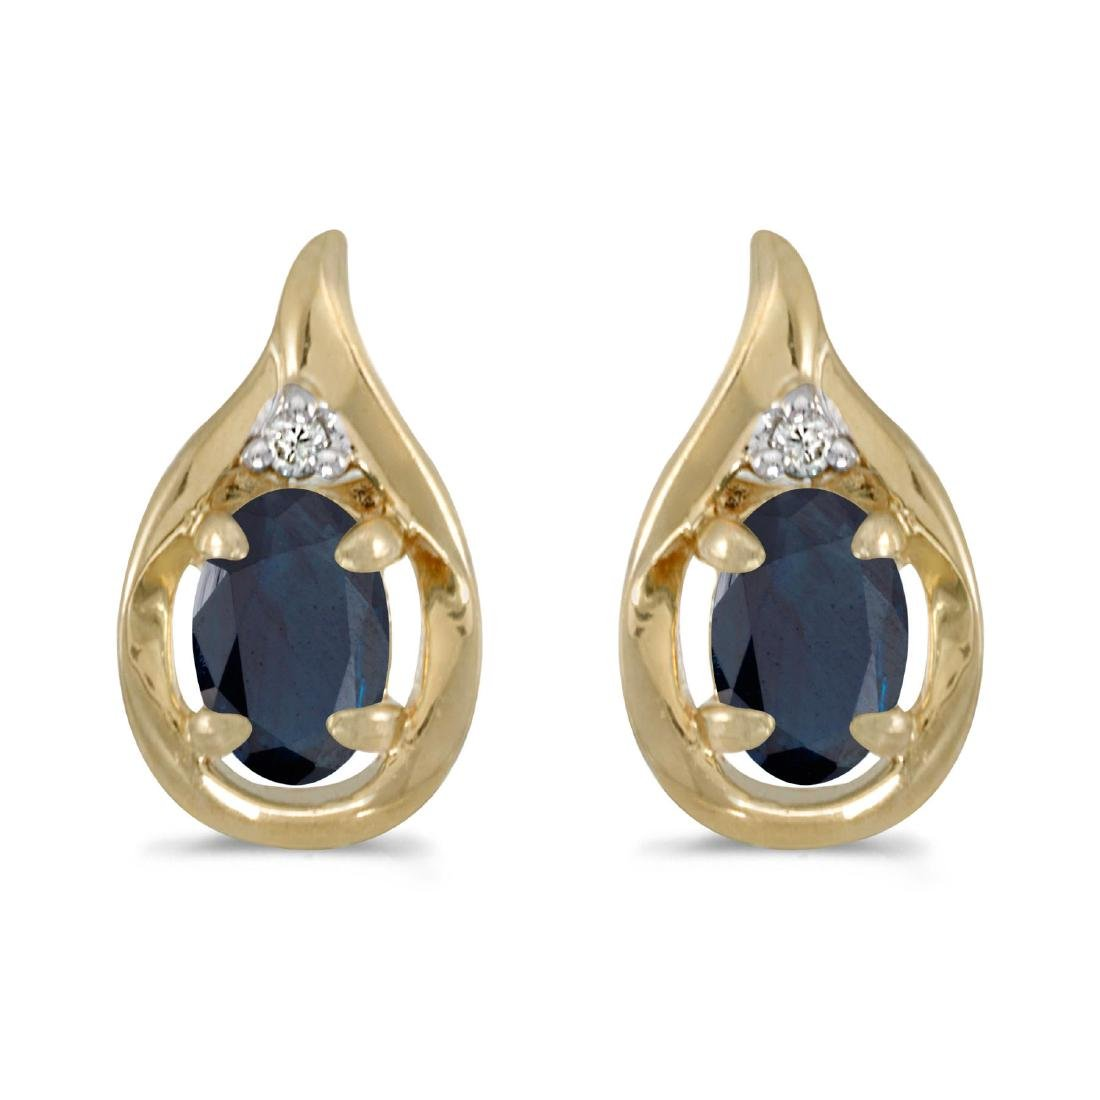 Certified 14k Yellow Gold Oval Sapphire And Diamond Ear